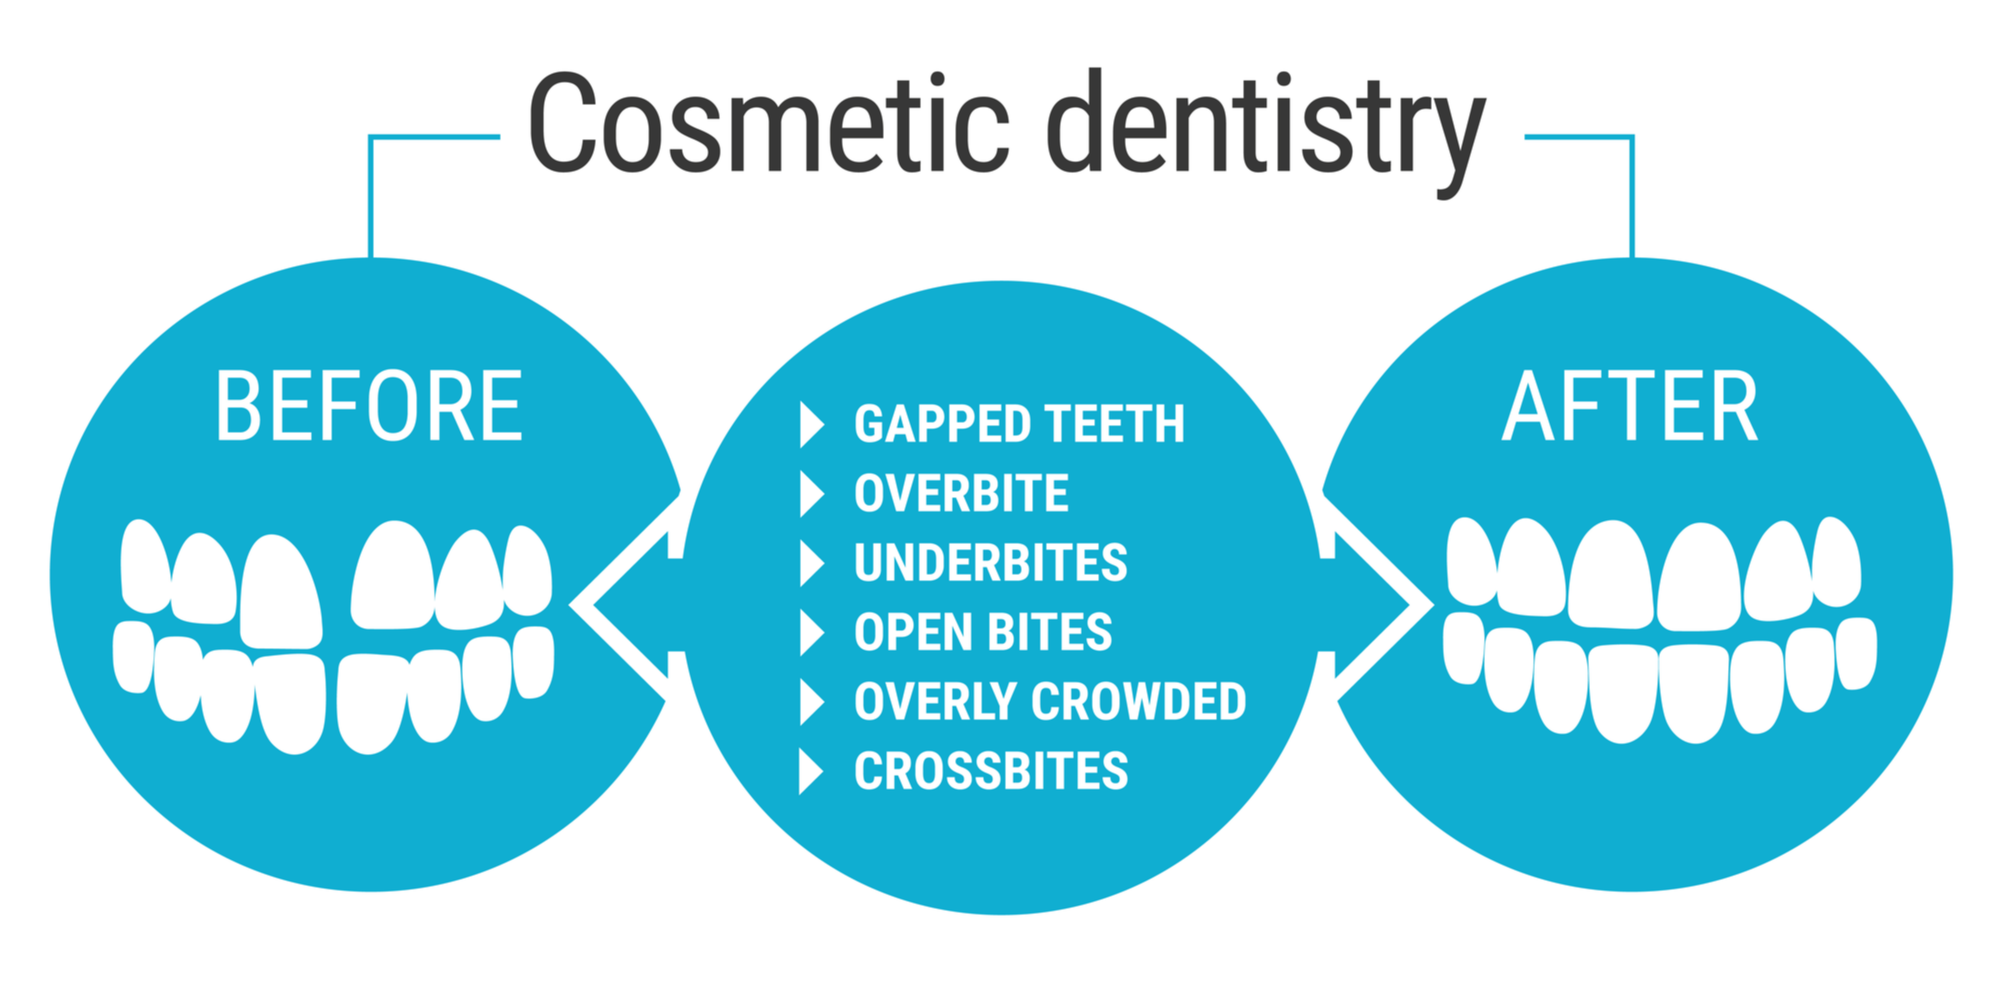 Cosmetic Dentistry Infographic​​​​​​​